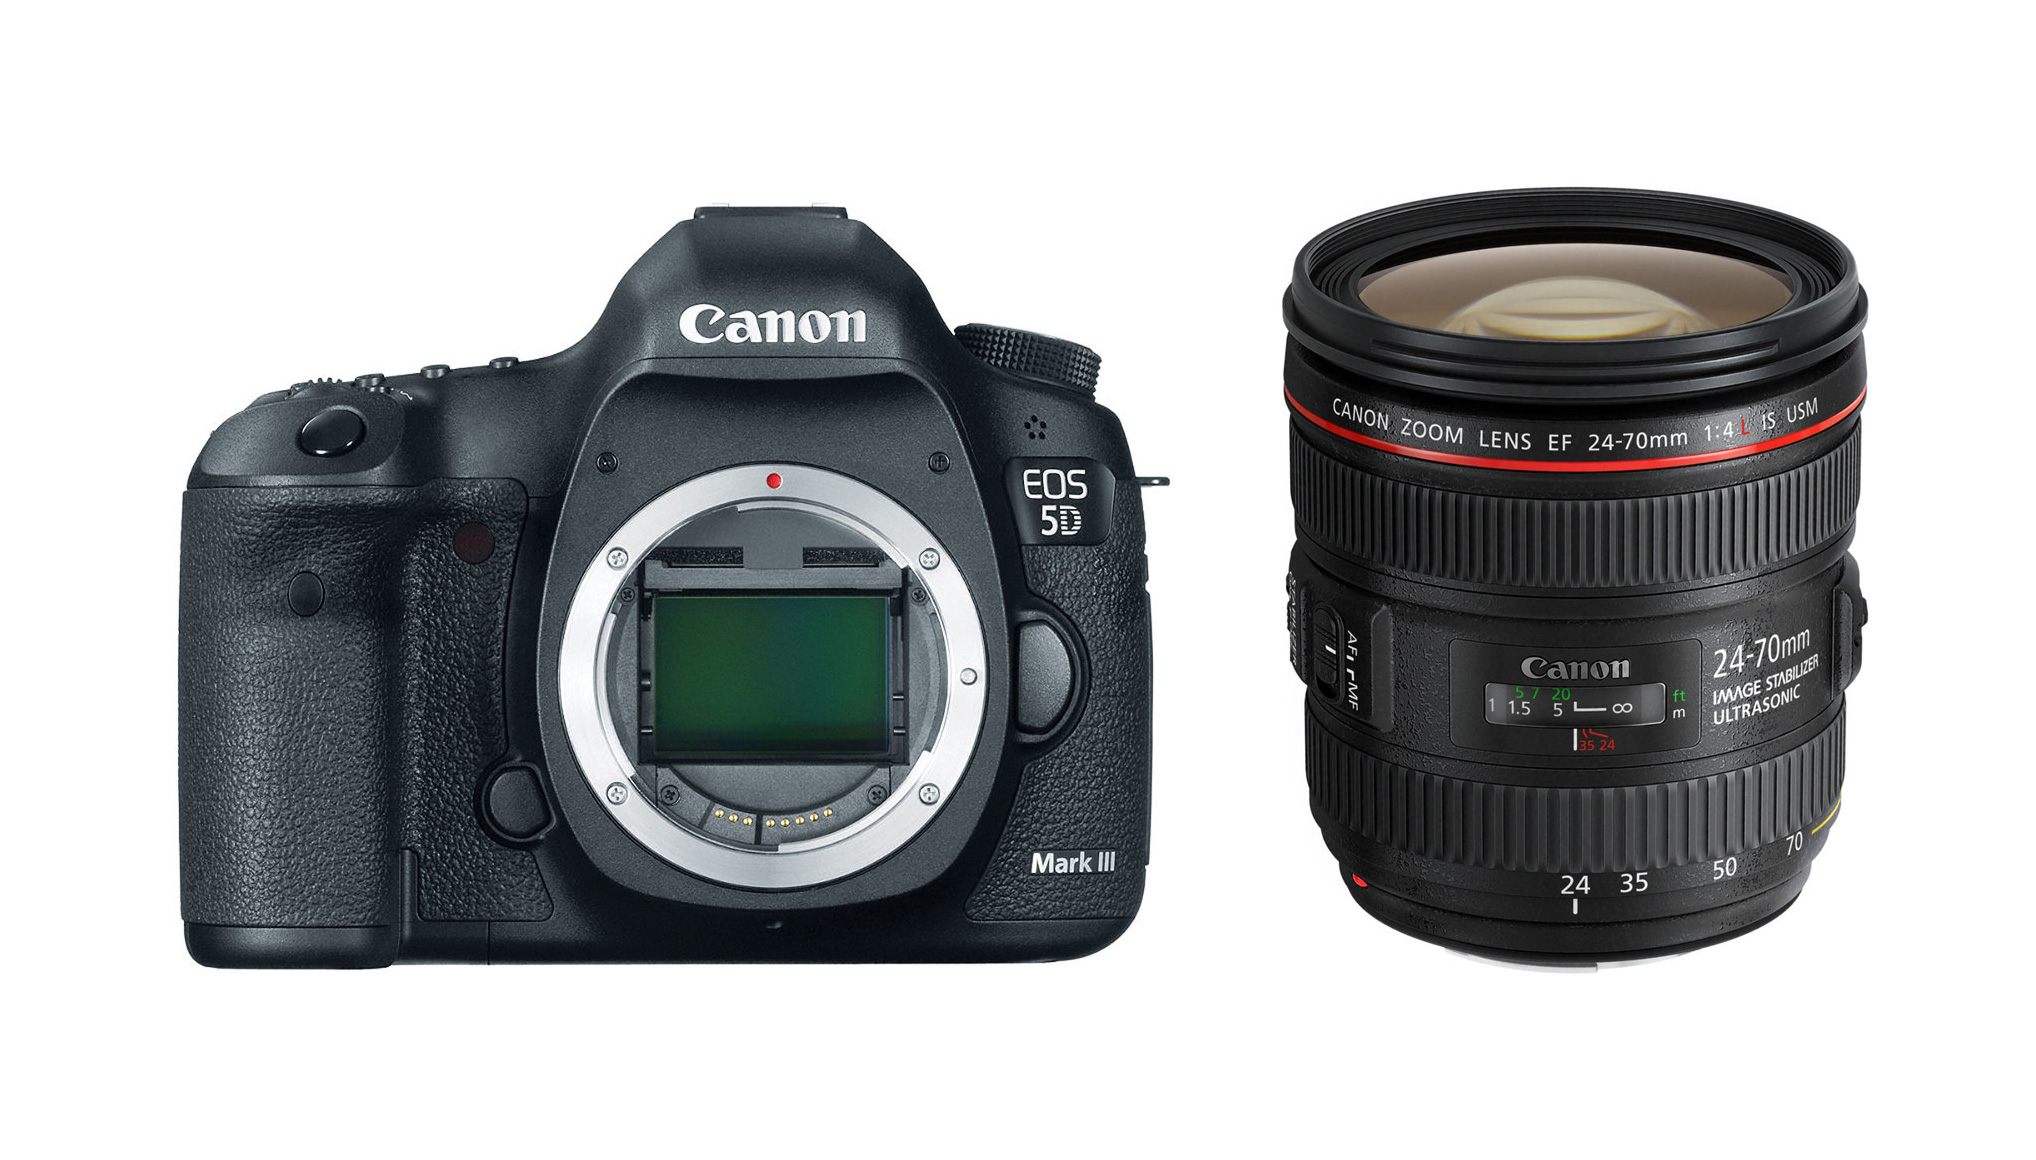 Camera New Canon Dslr Cameras Coming Soon 5d mark iii with 24 70mm f4l kit coming soon camera news at canon eos ef is usm